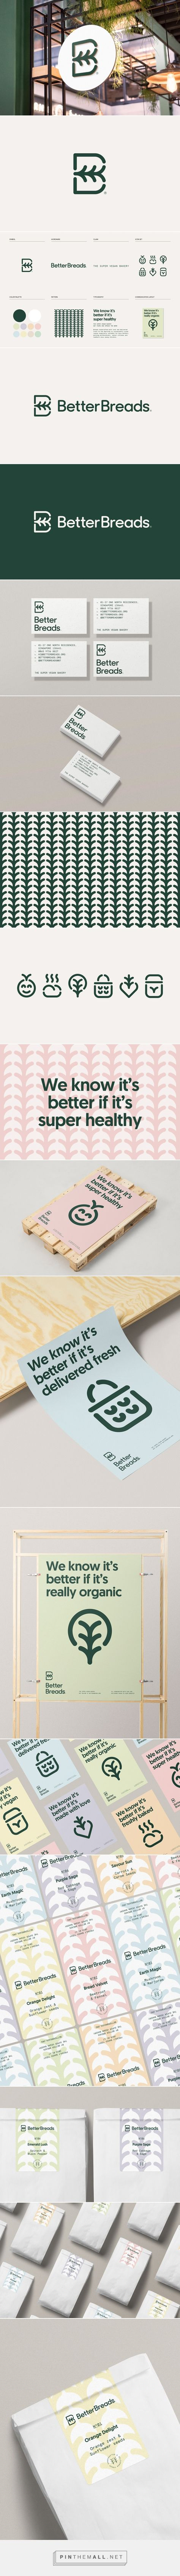 264 best Branding & Packaging images on Pinterest